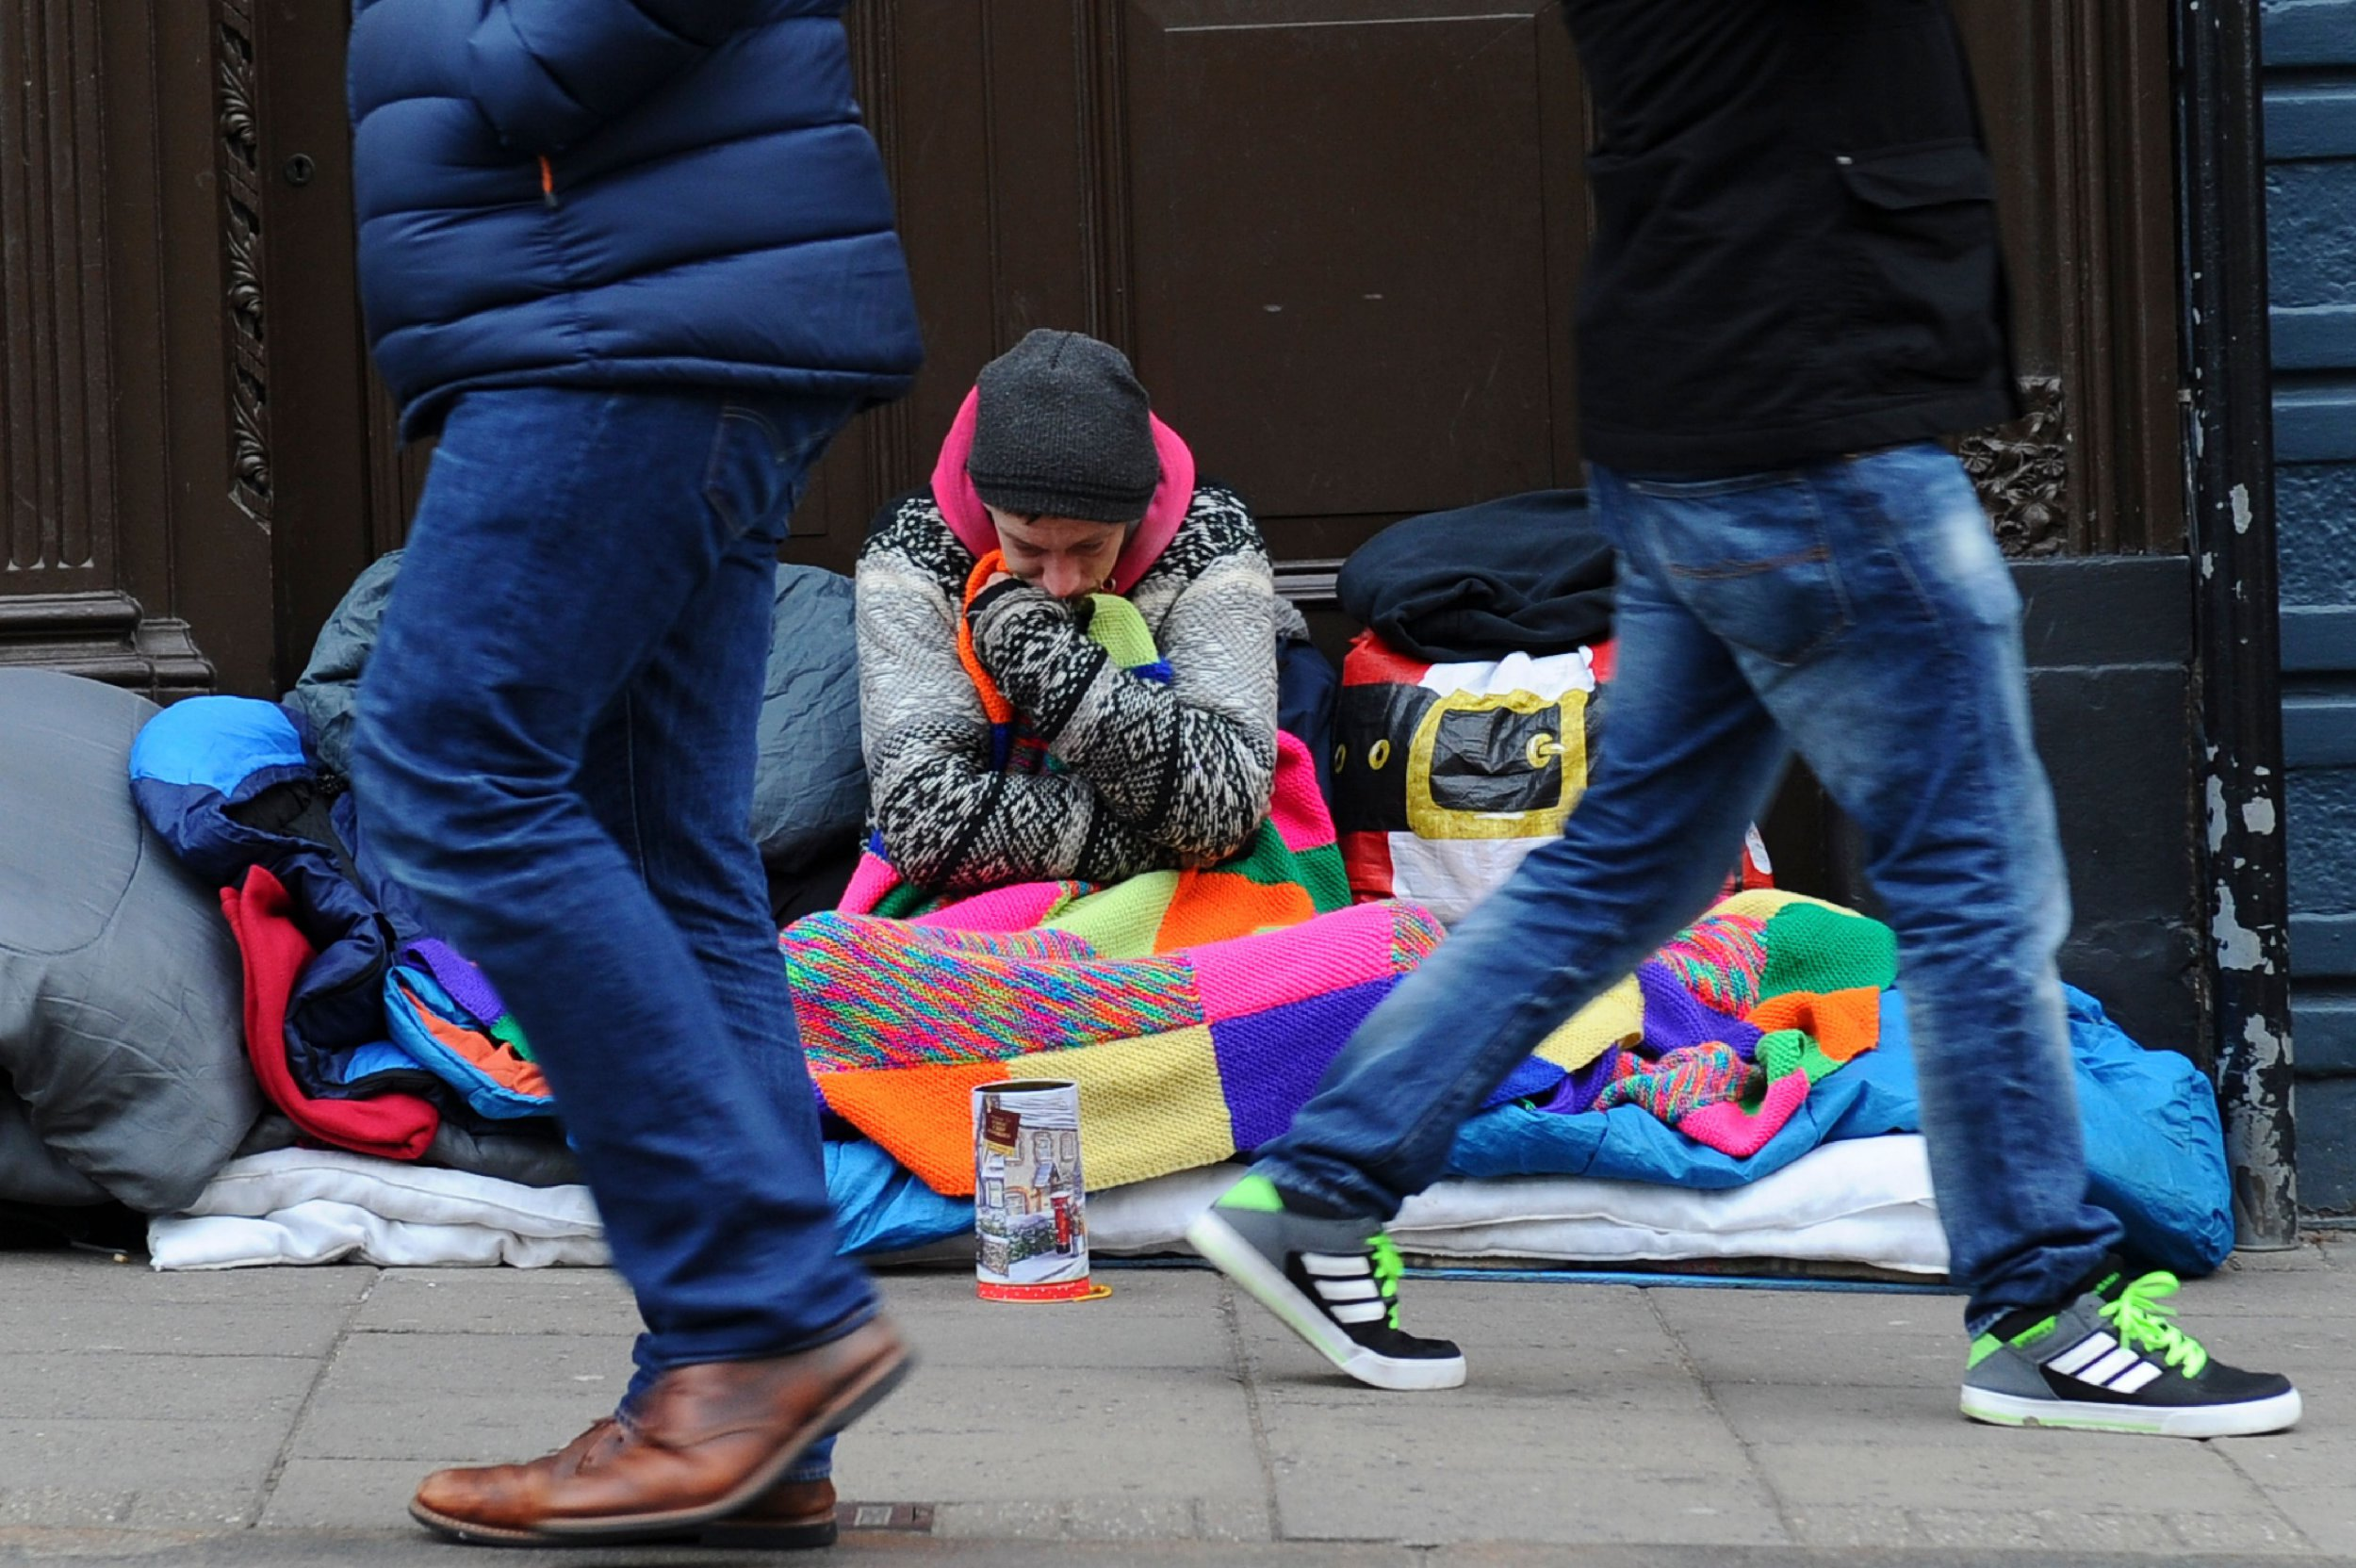 There's been a 165% increase in homelessness since the Tories took power